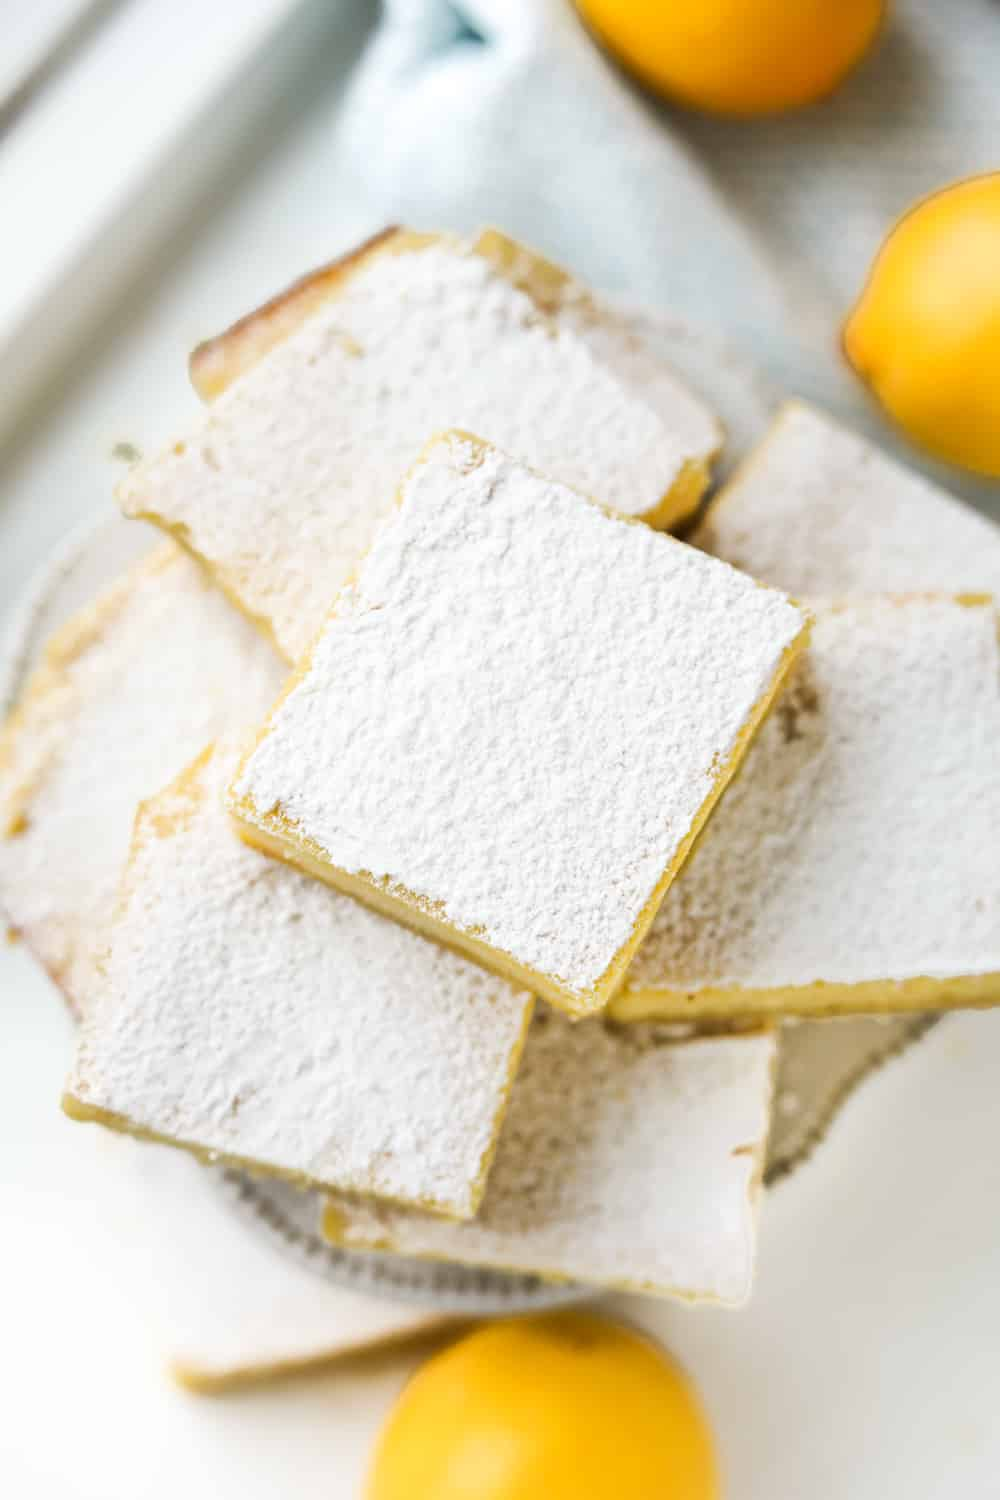 Keto lemon bars stacked on top of one another on a small cake plate.